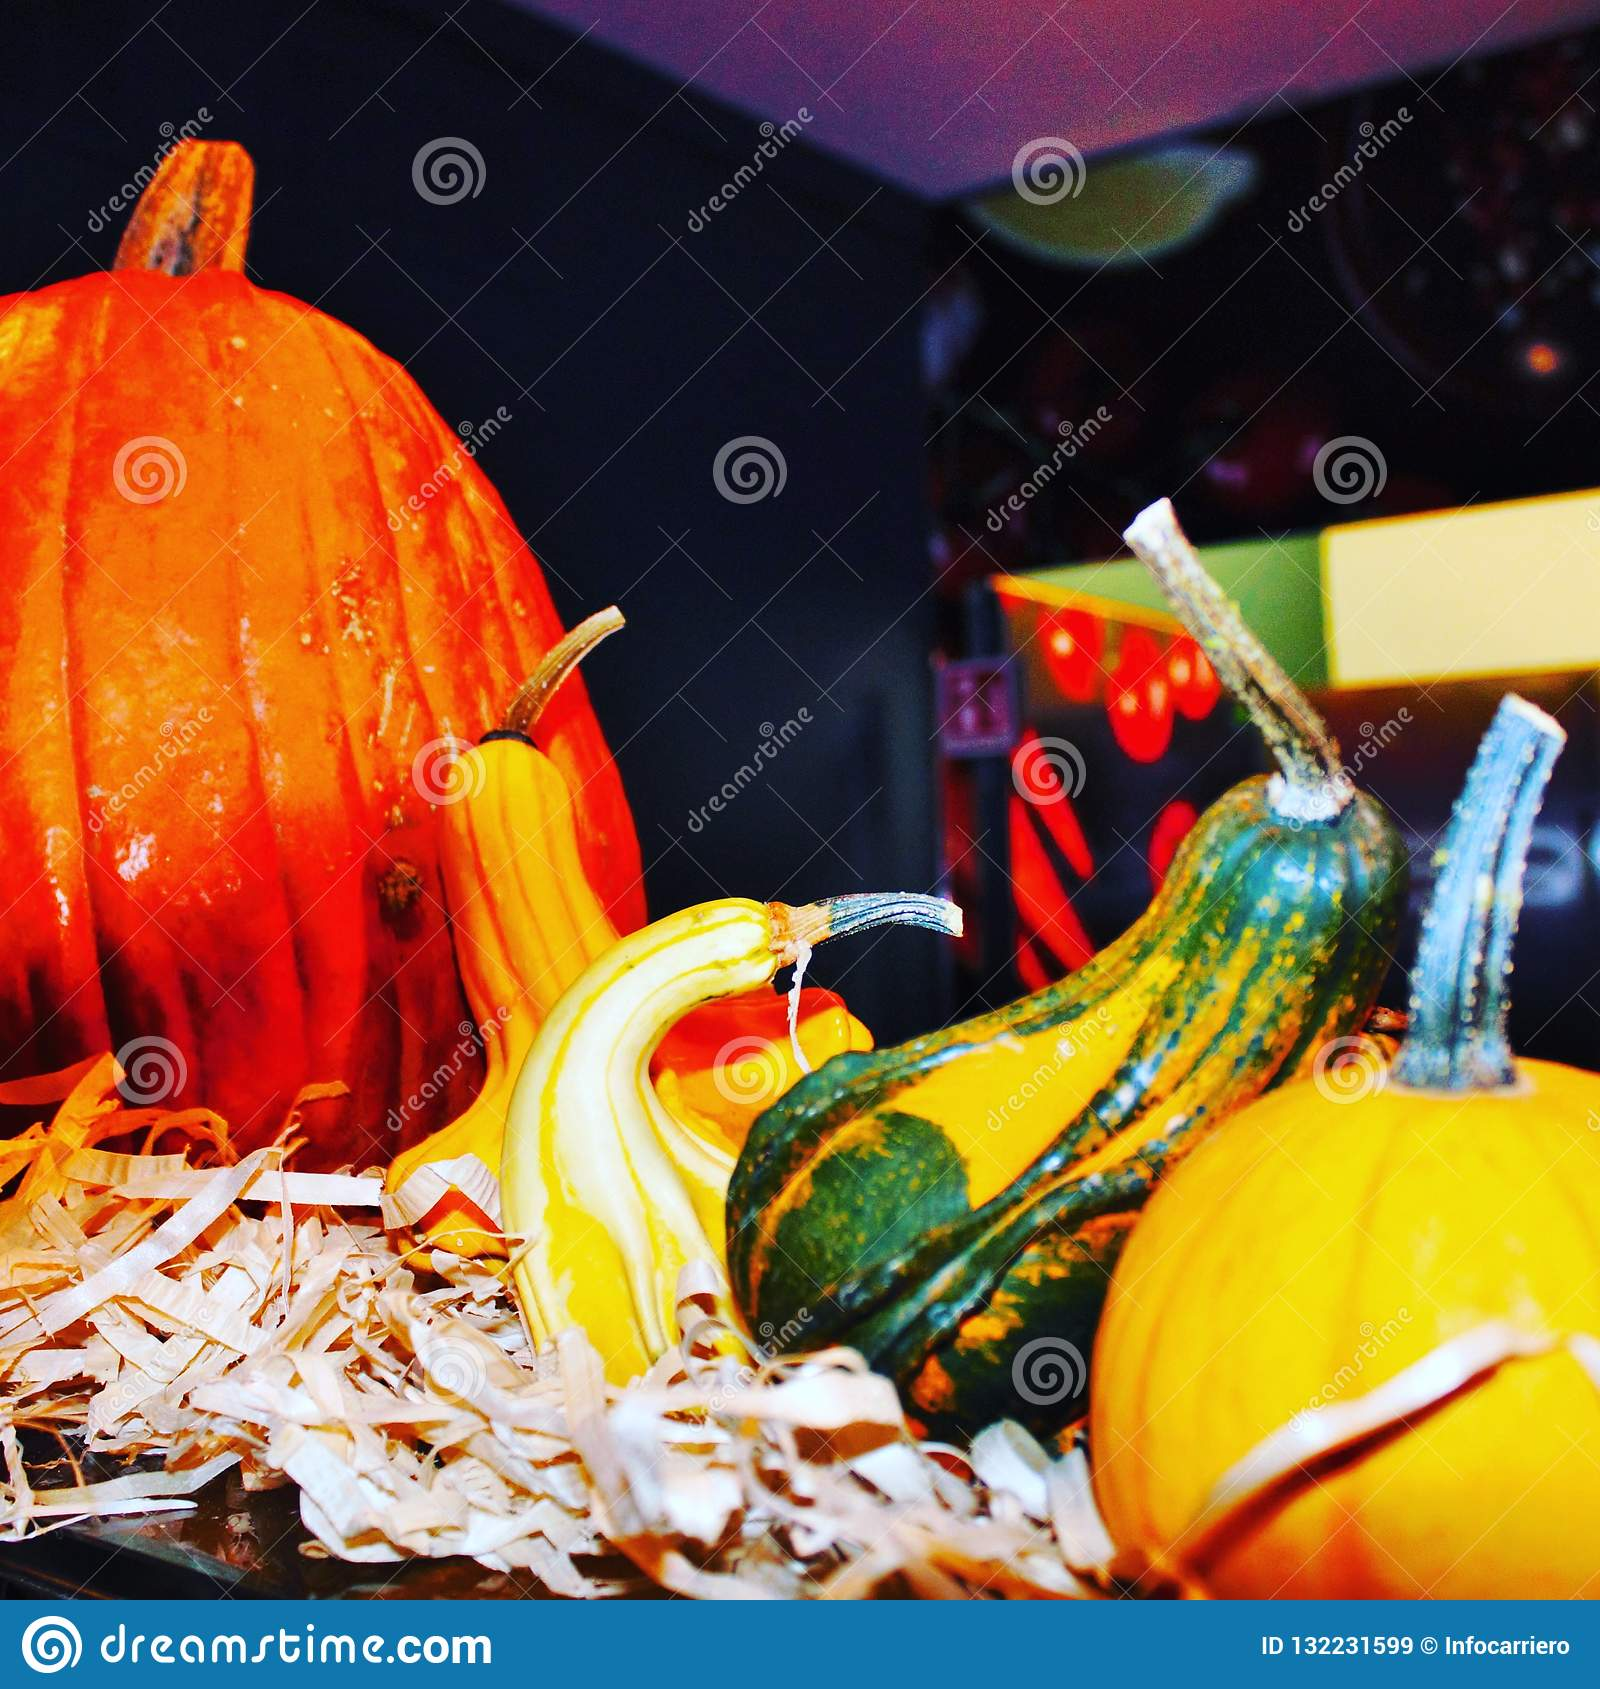 composition of colored pumpkins during the Halloween period.